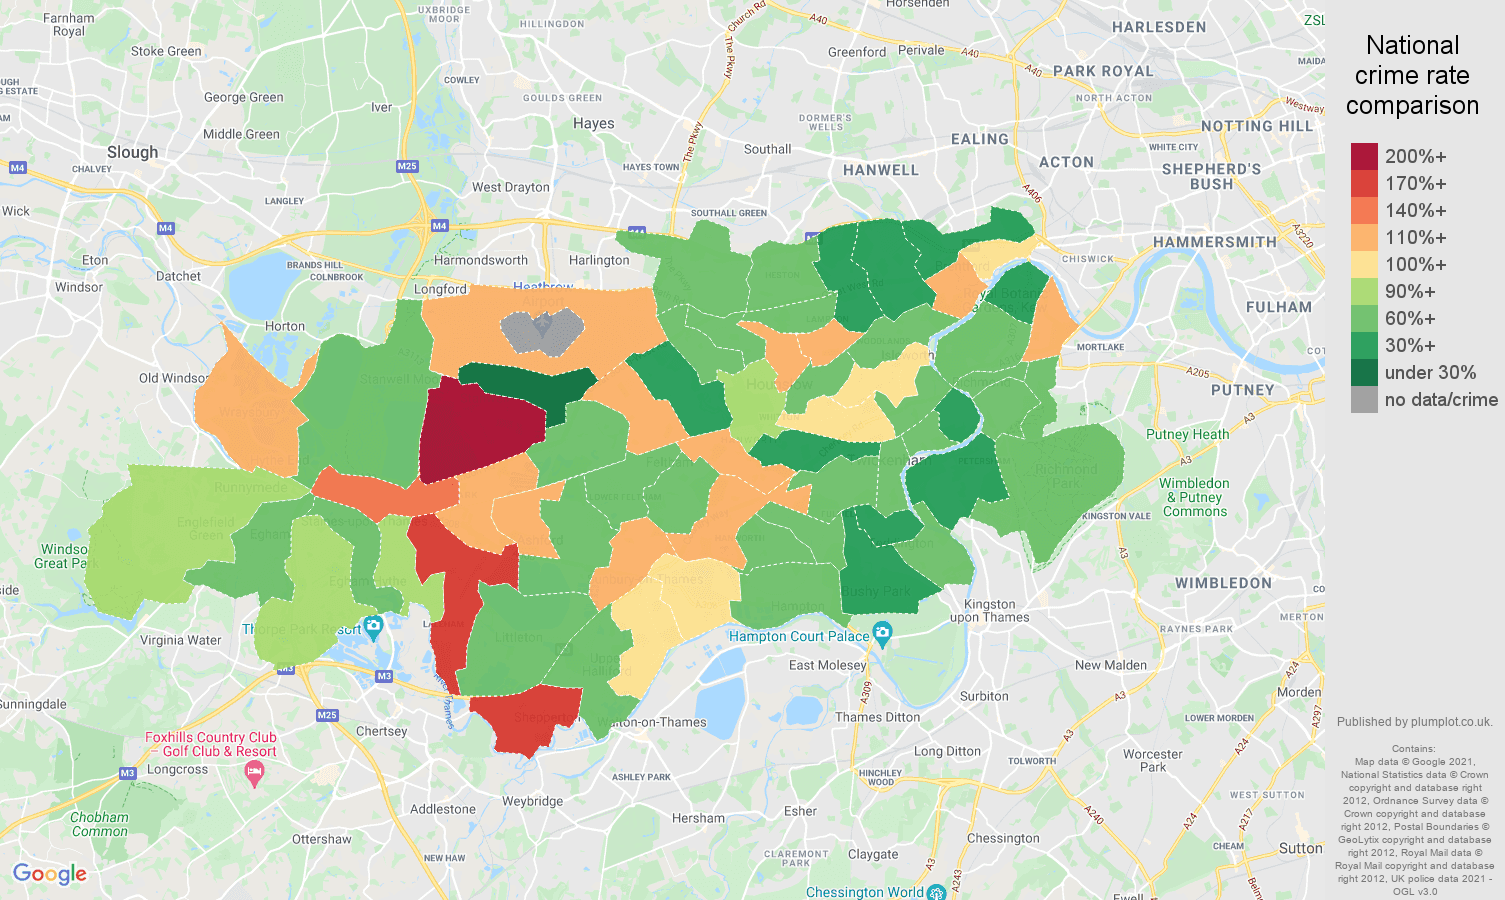 Twickenham criminal damage and arson crime rate comparison map